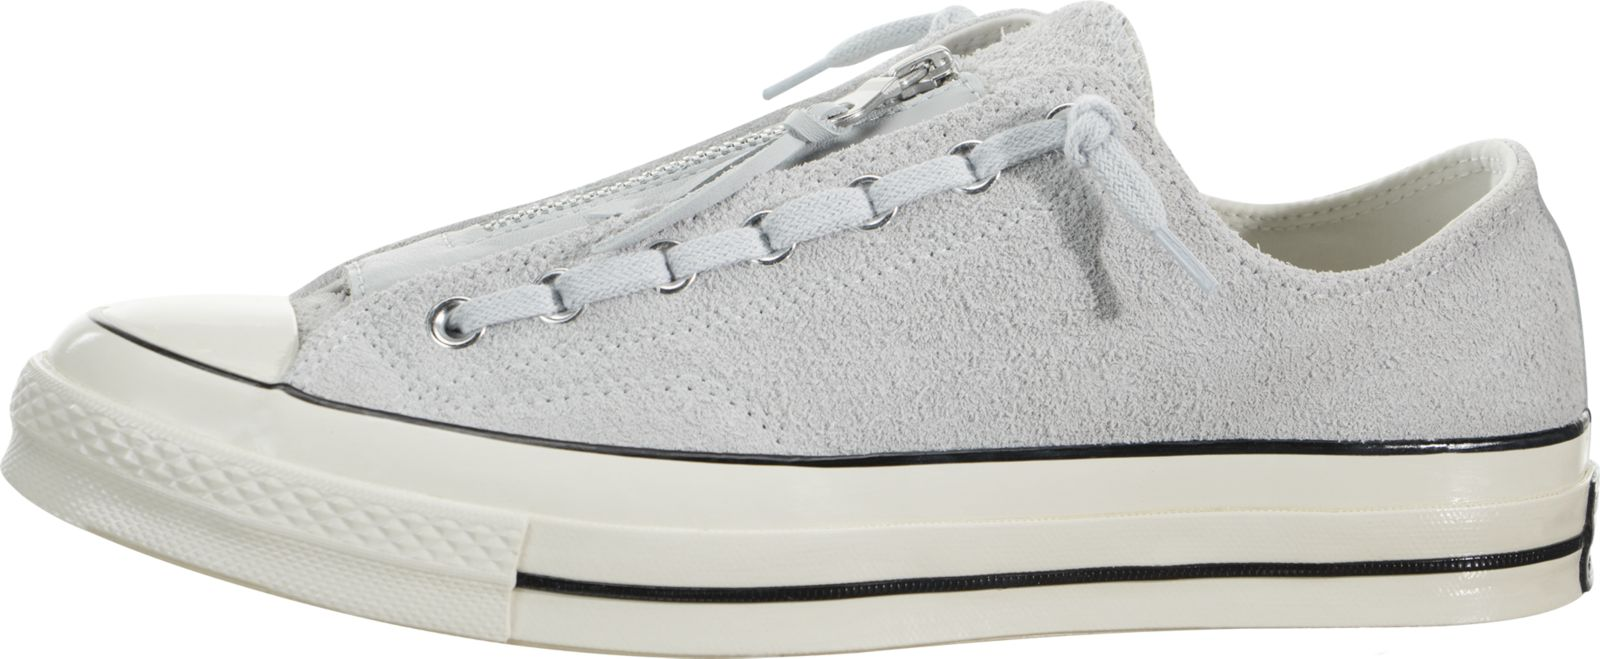 Converse Chuck Taylor All Star 70 Zip Low